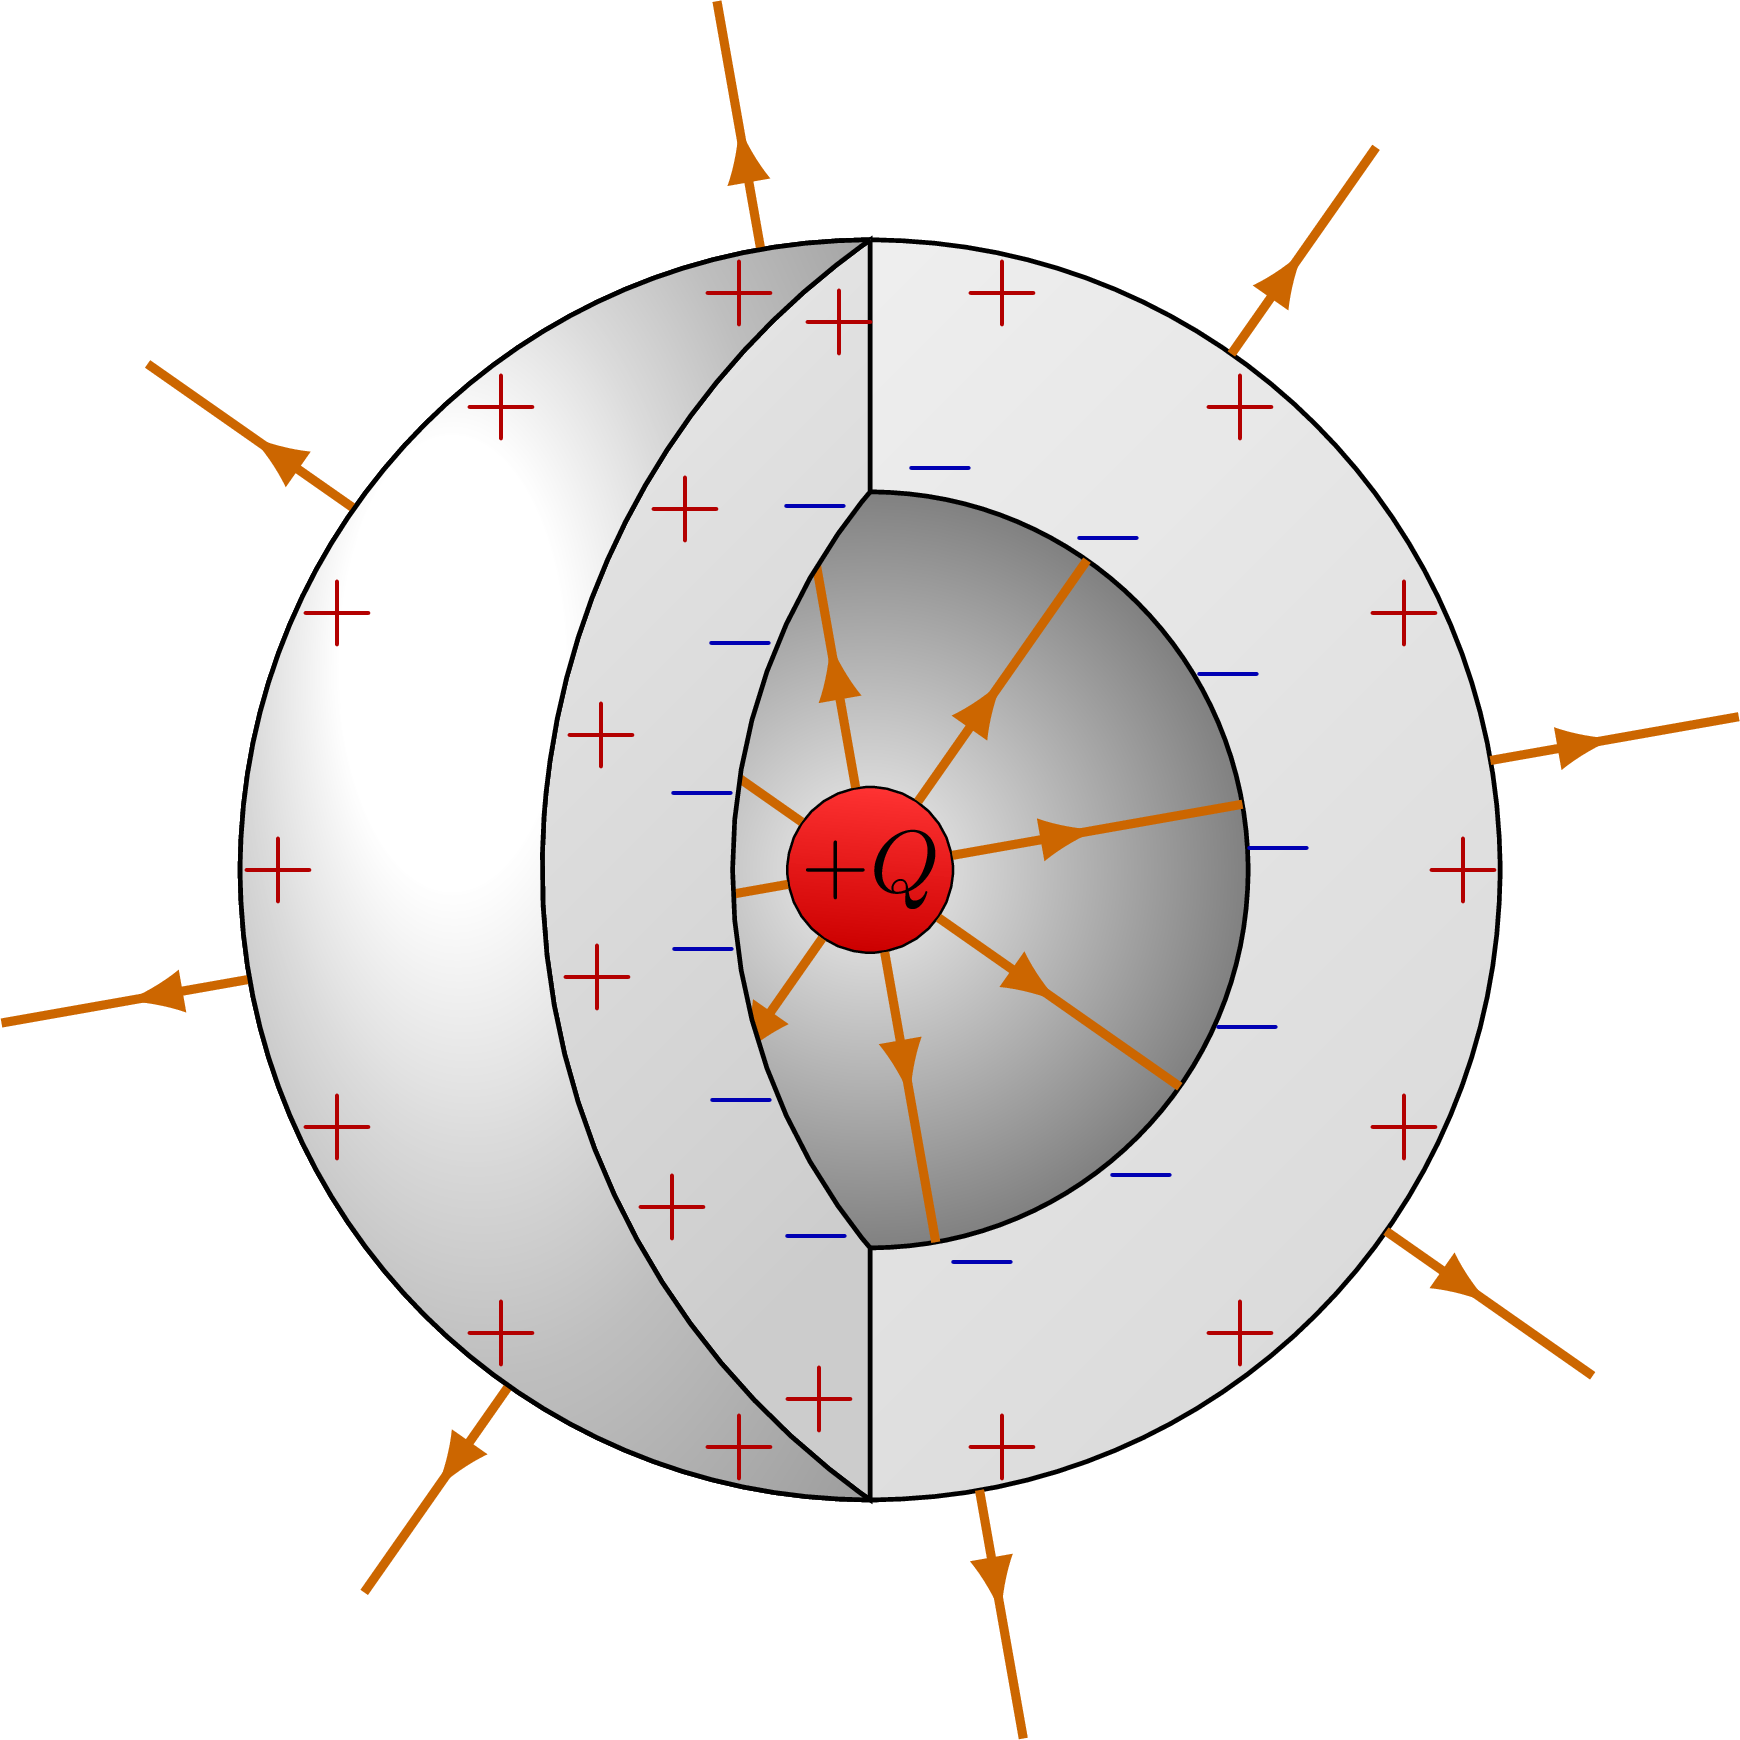 electric_field_sphere-009.png